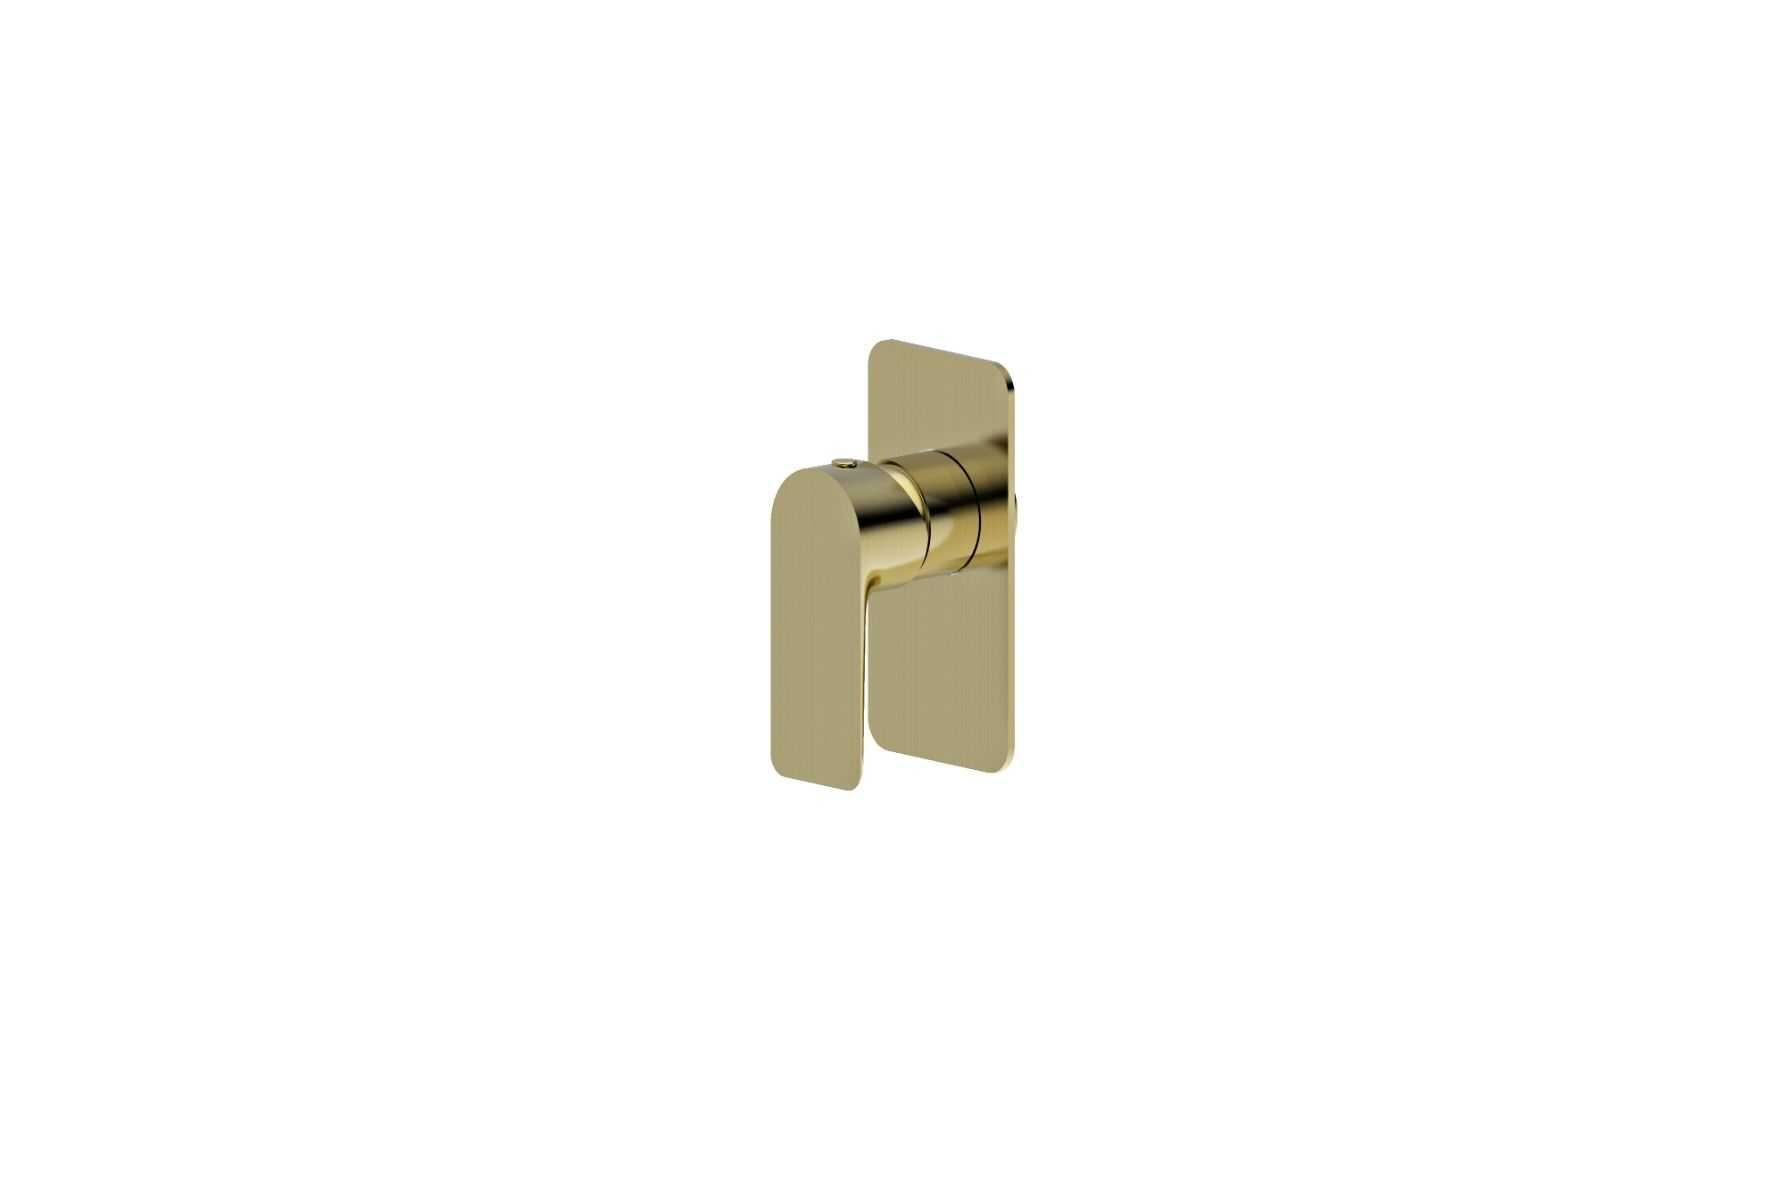 LUXUS Brushed Gold Wall Mixer